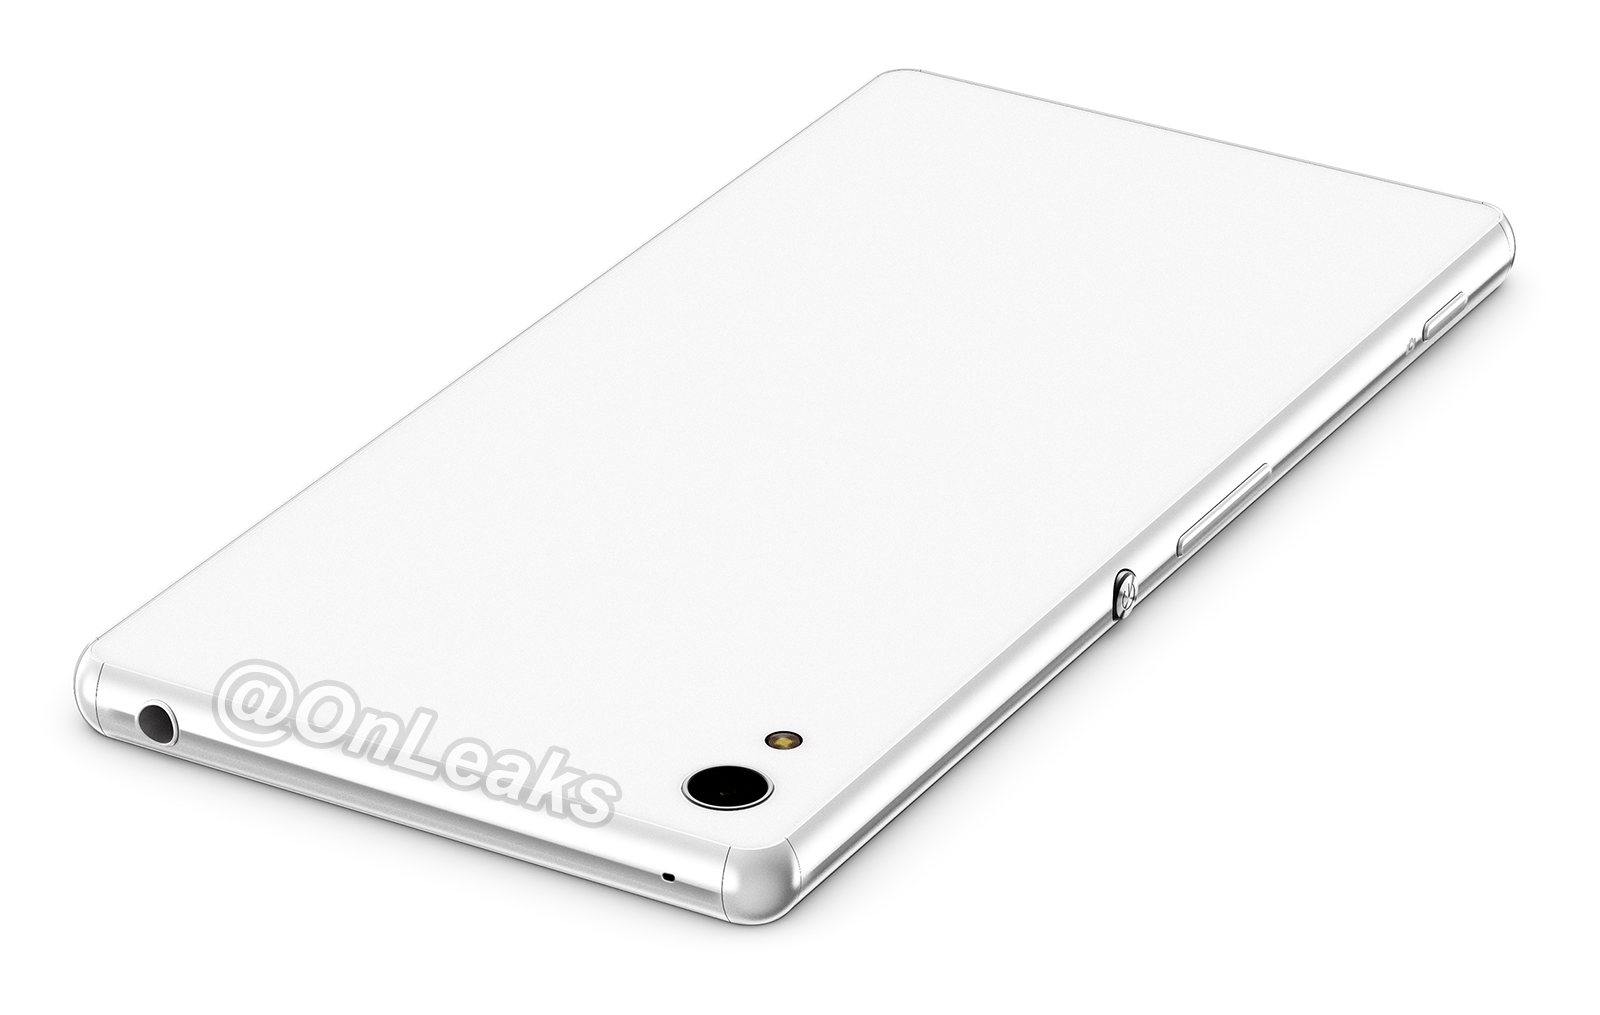 Alleged-Sony-Xperia-Z4-non-final-renders (2)